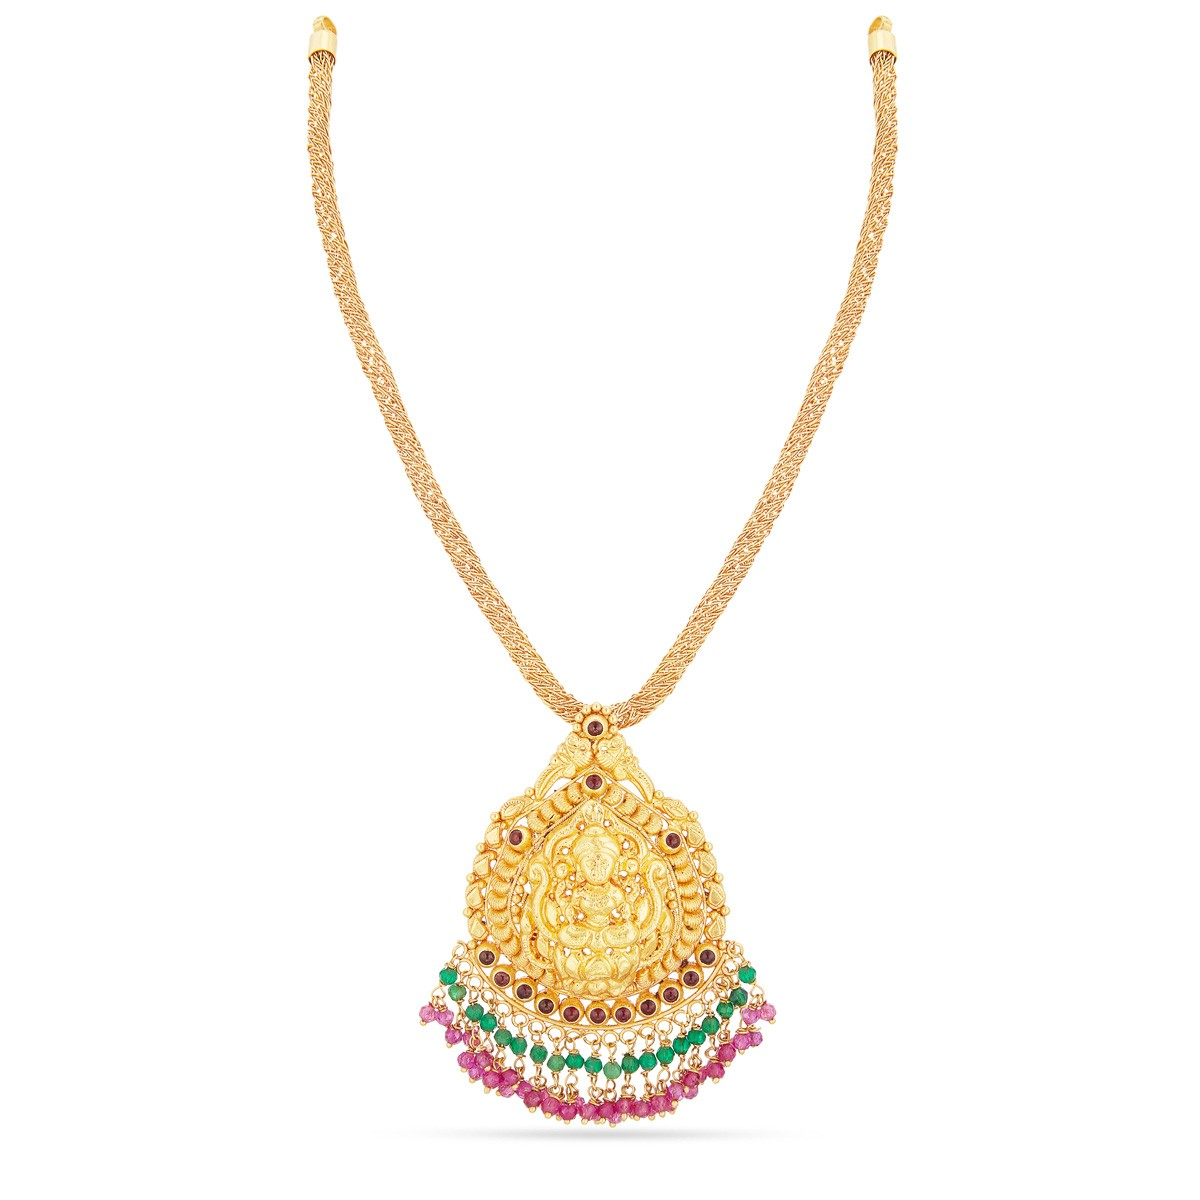 22k gold simple gold necklace design for inquiries please contact the - Light Weight Gold Necklace Designs With Price In Rupees